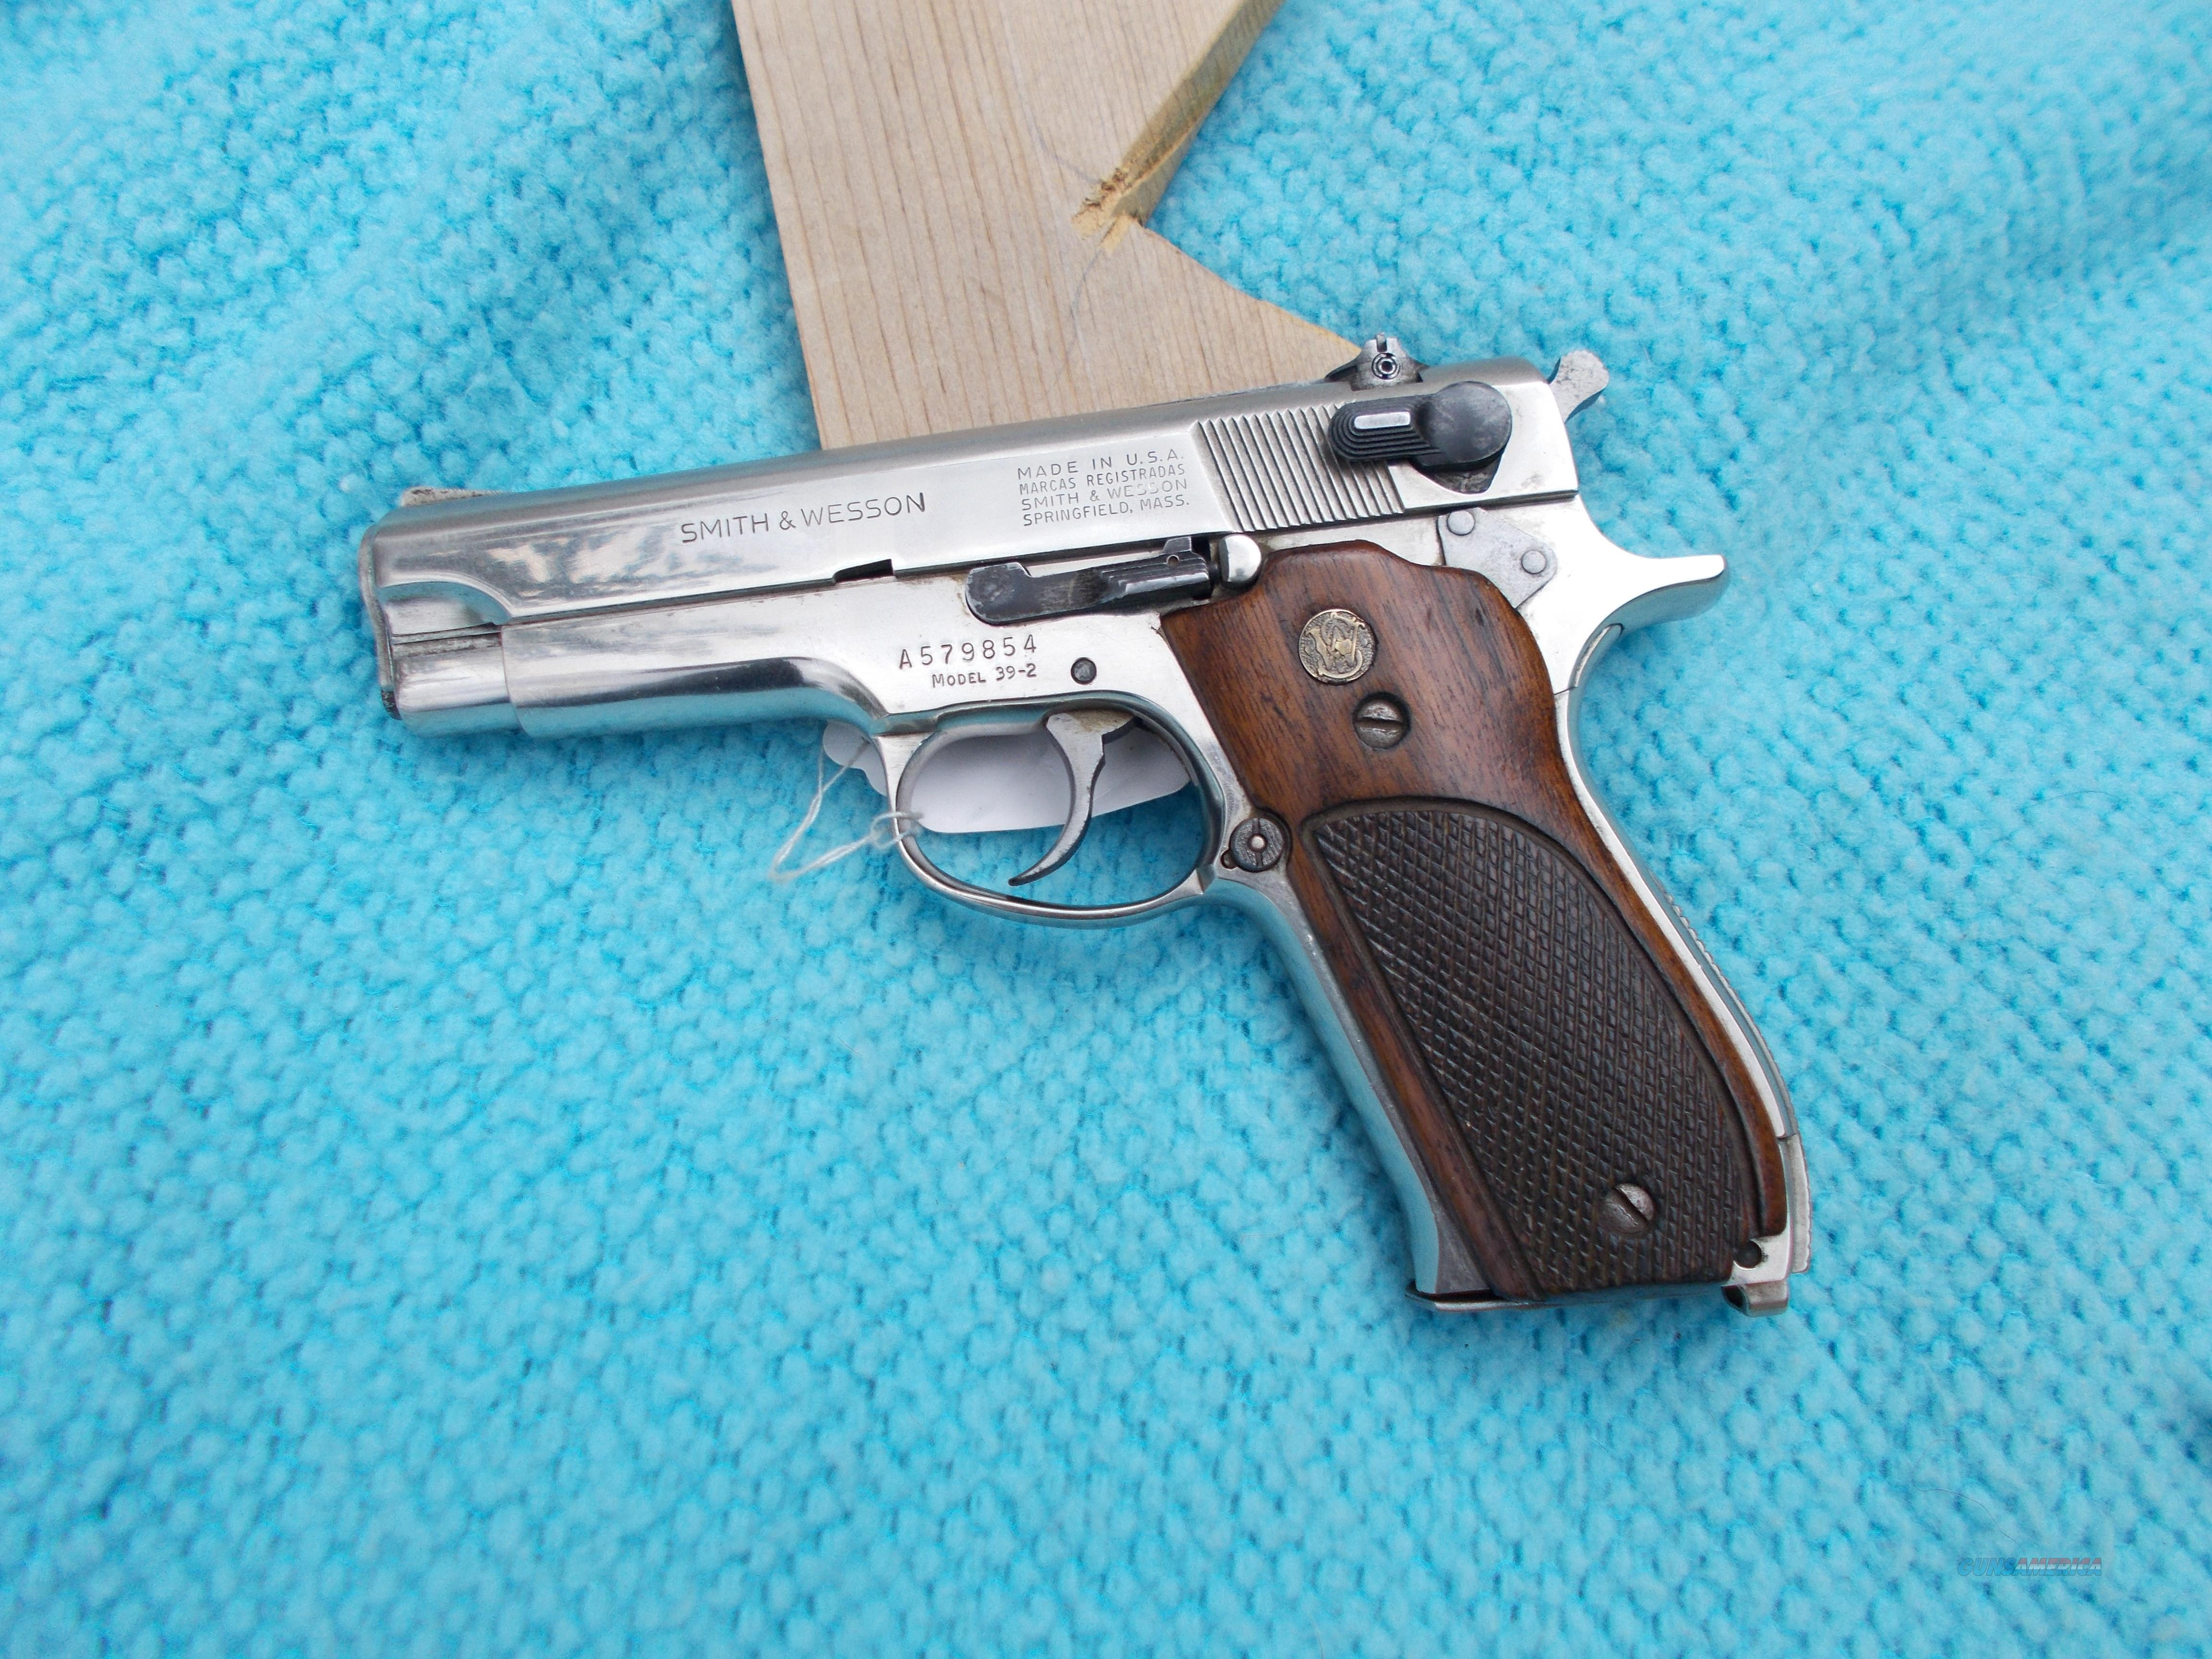 smith&wesson 39-2 9mm nickel  Guns > Pistols > Smith & Wesson Pistols - Autos > Steel Frame